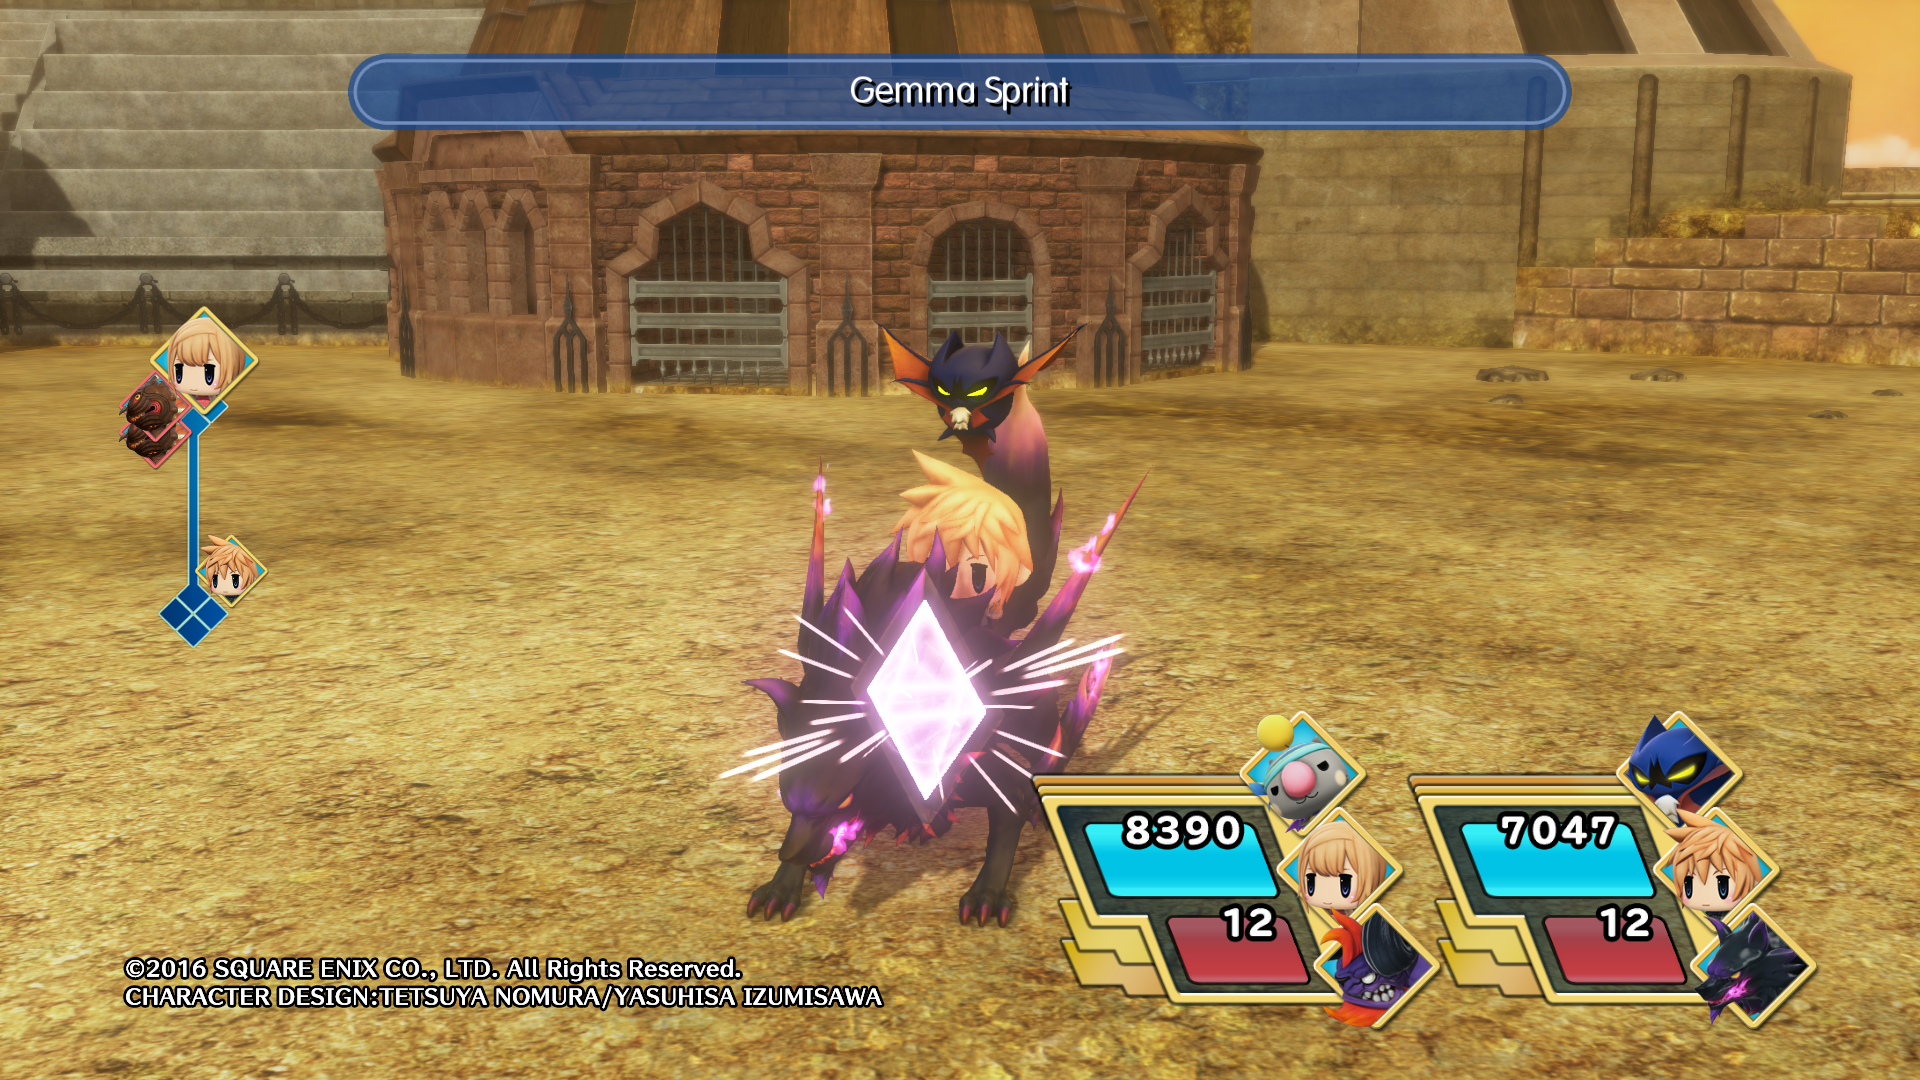 world-of-final-fantasy-guida-chocolatte-screenshot-05